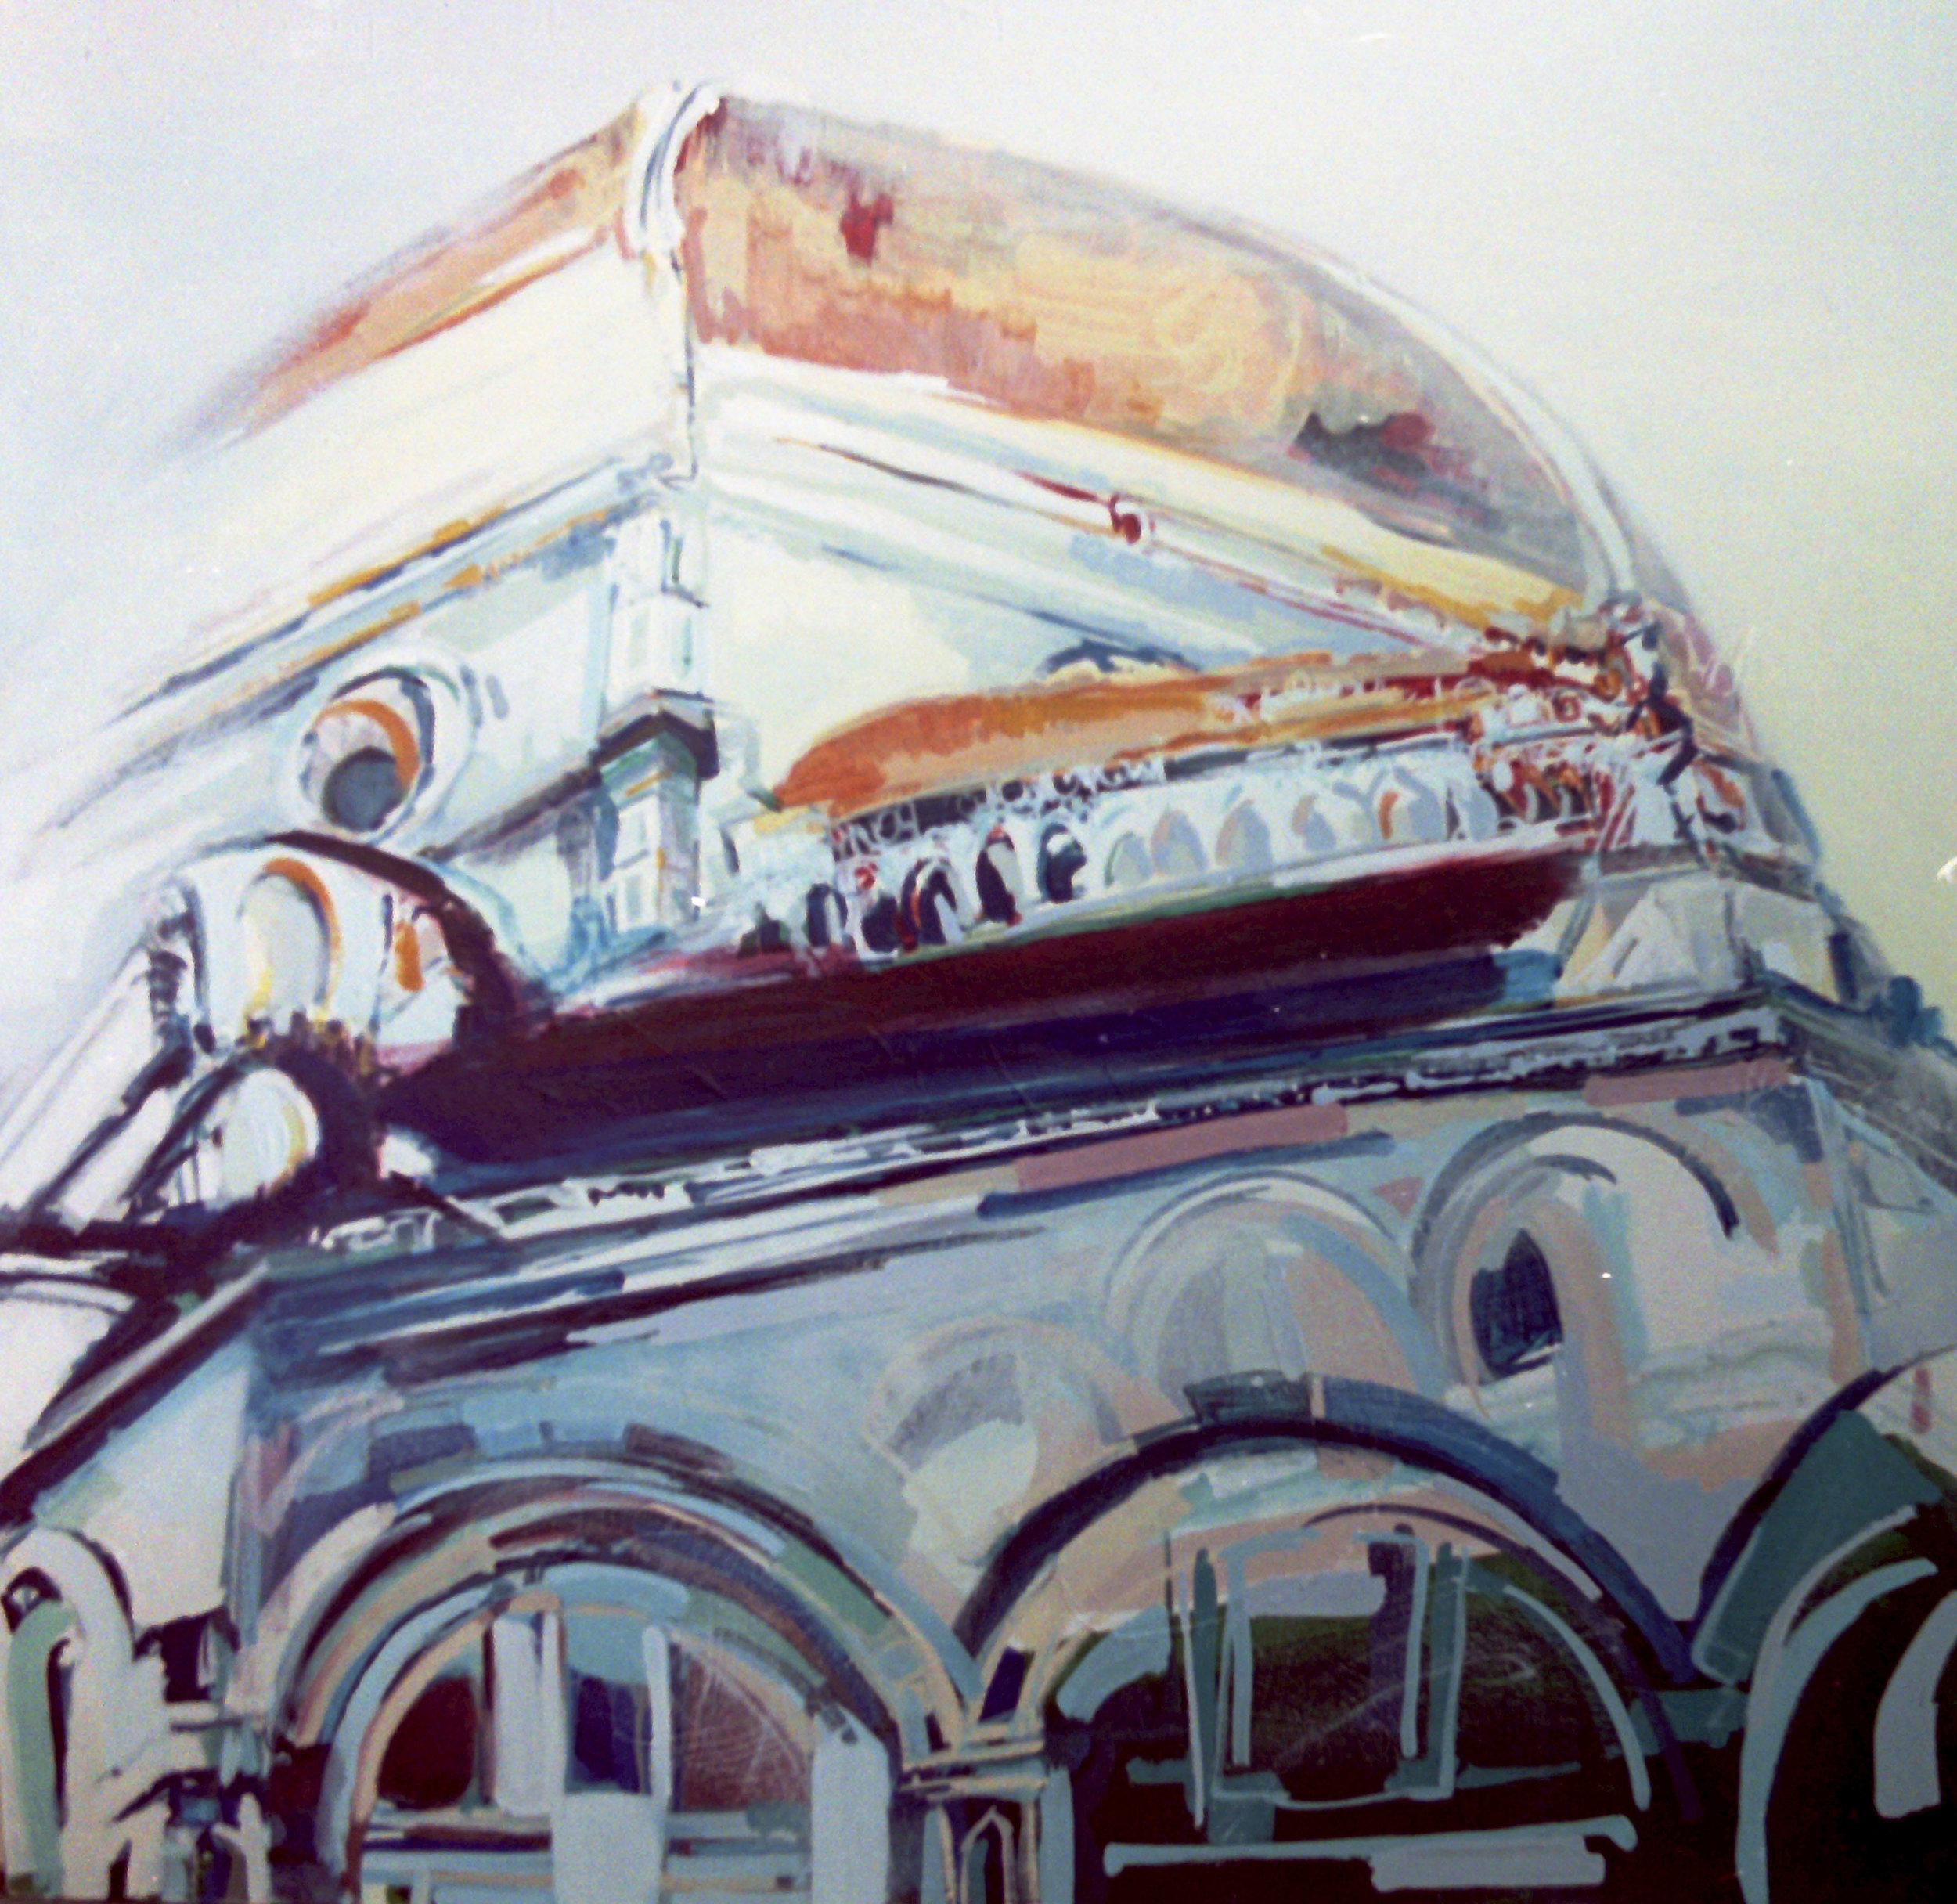 il duomo Firenze, acrylic on canvas, 2001, 120 x 120cm sold